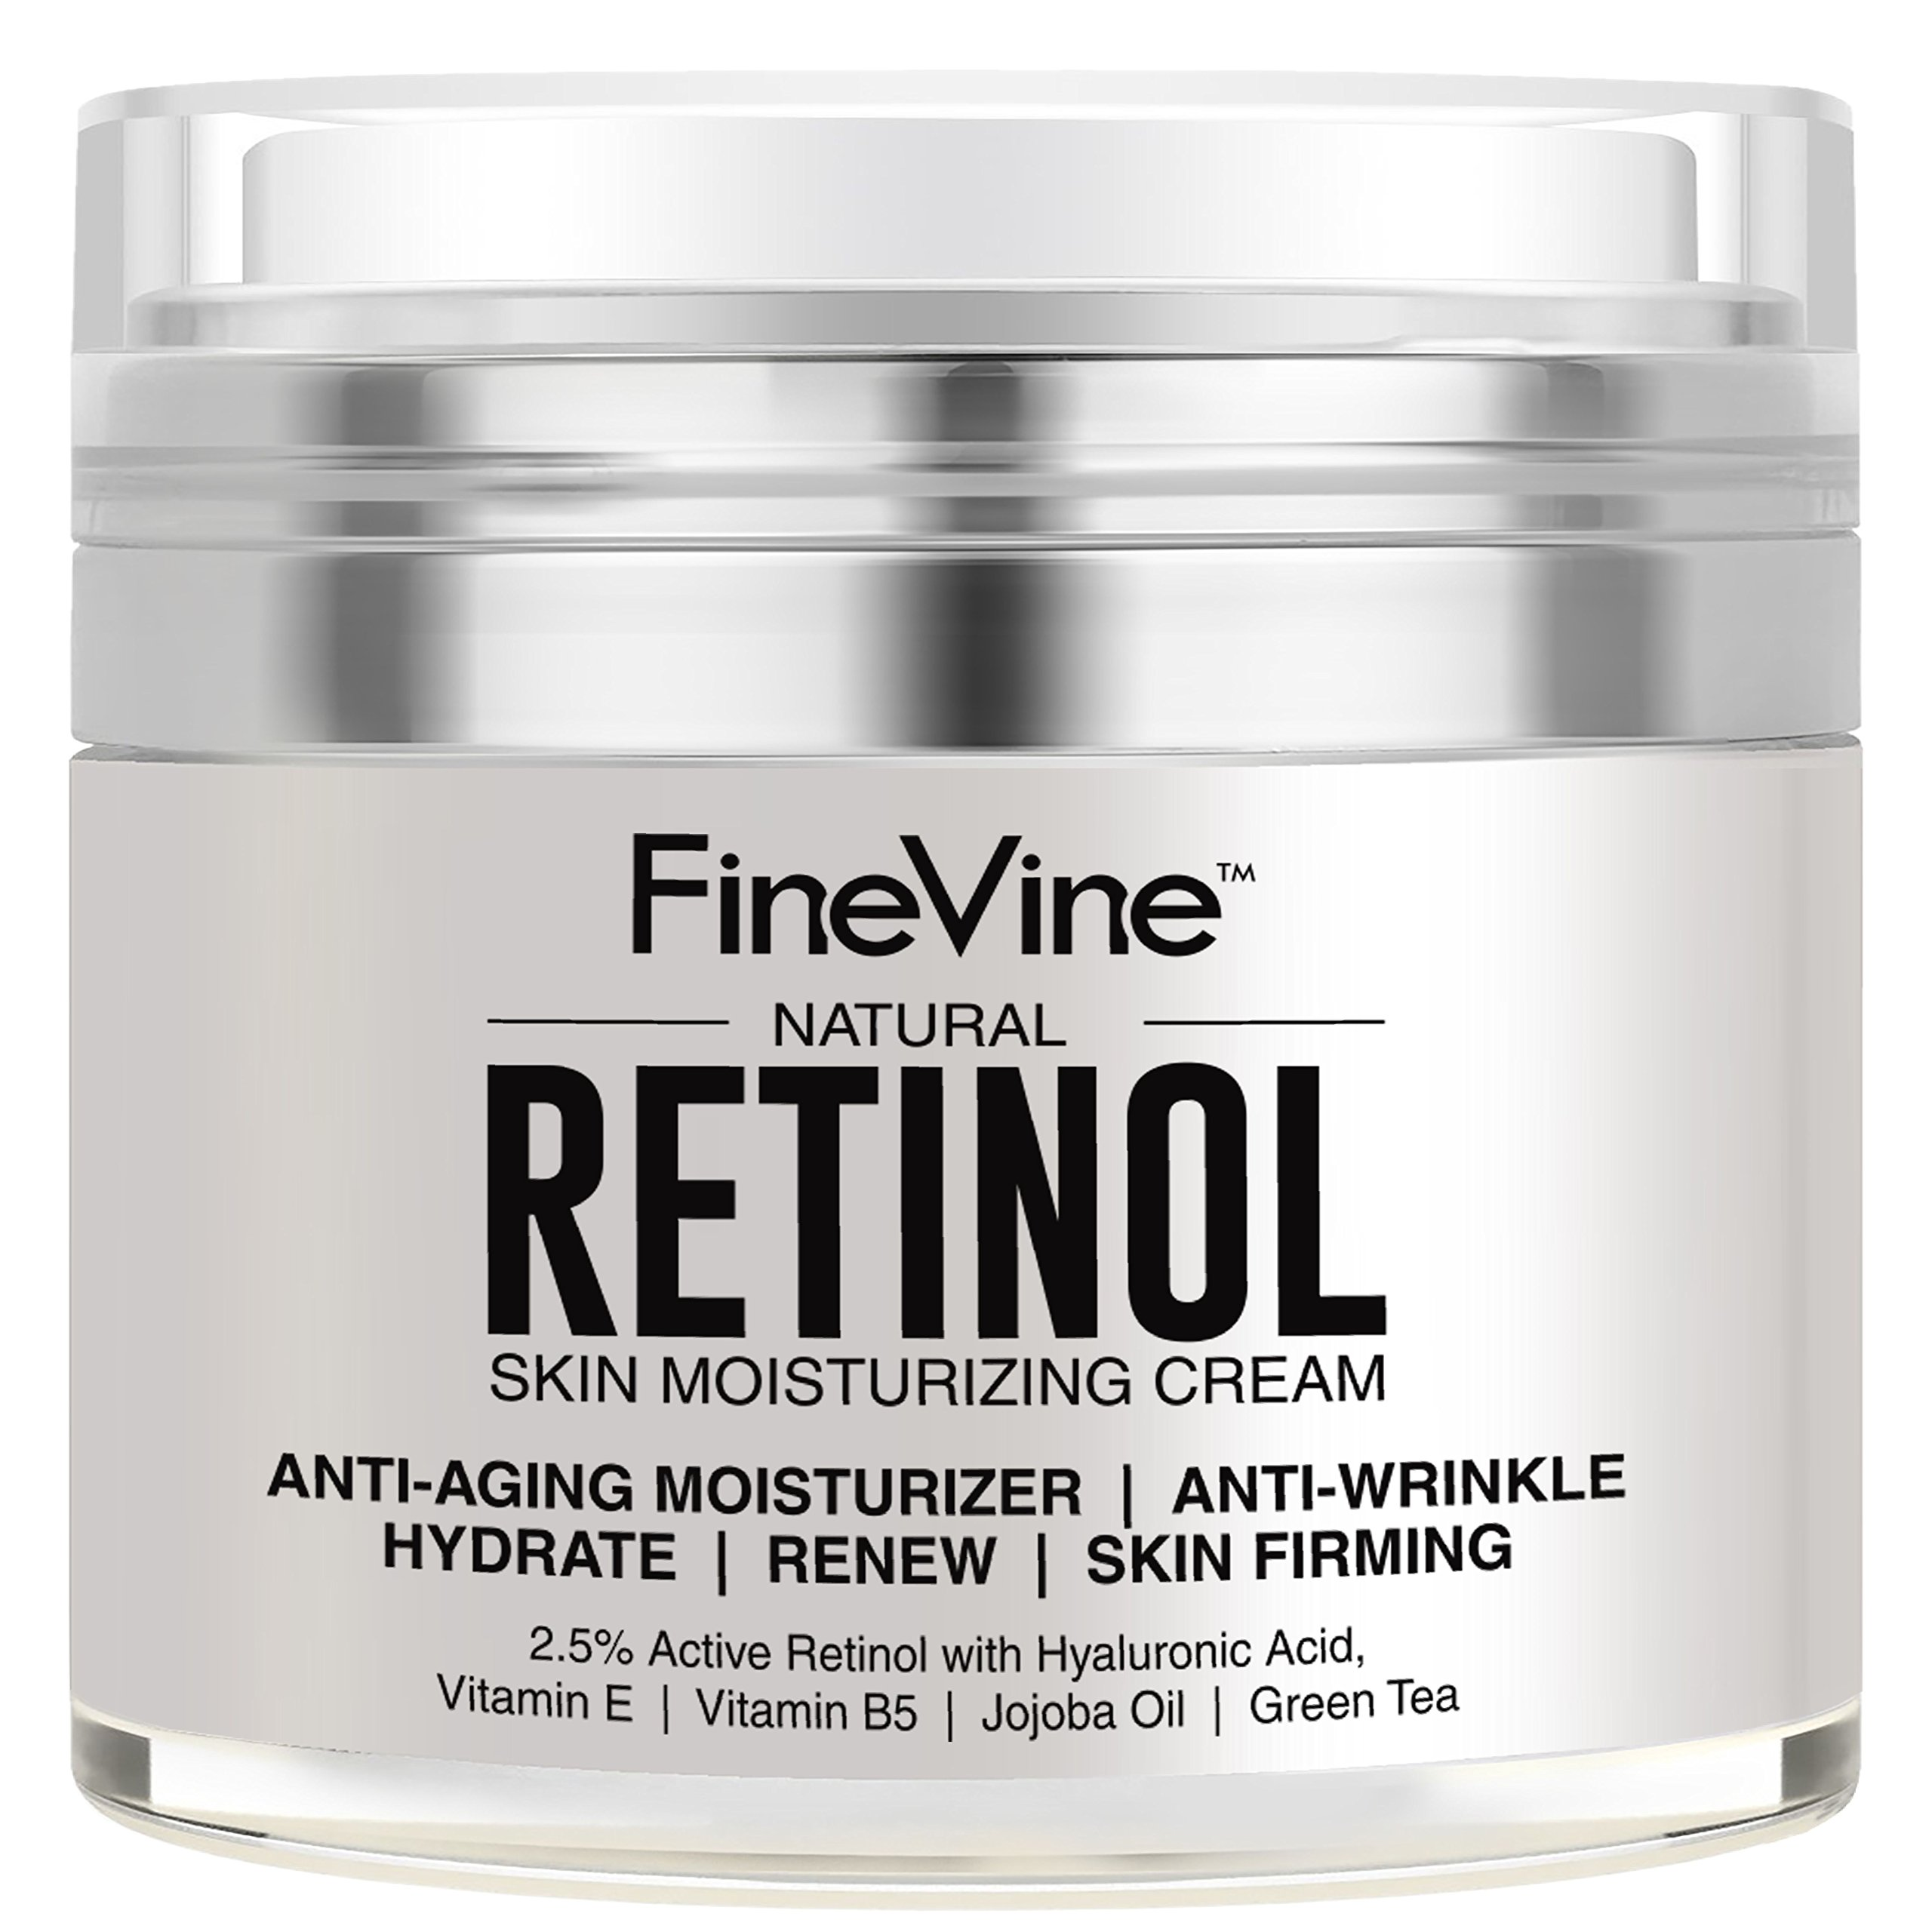 Retinol Moisturizer Cream for Face and Eye Area - Made in USA - with Hyaluronic Acid, Vitamin E - Best Day and Night Anti Aging Formula to Reduce Wrinkles, Fine Lines & Even Skin Tone. by FineVine (Image #1)